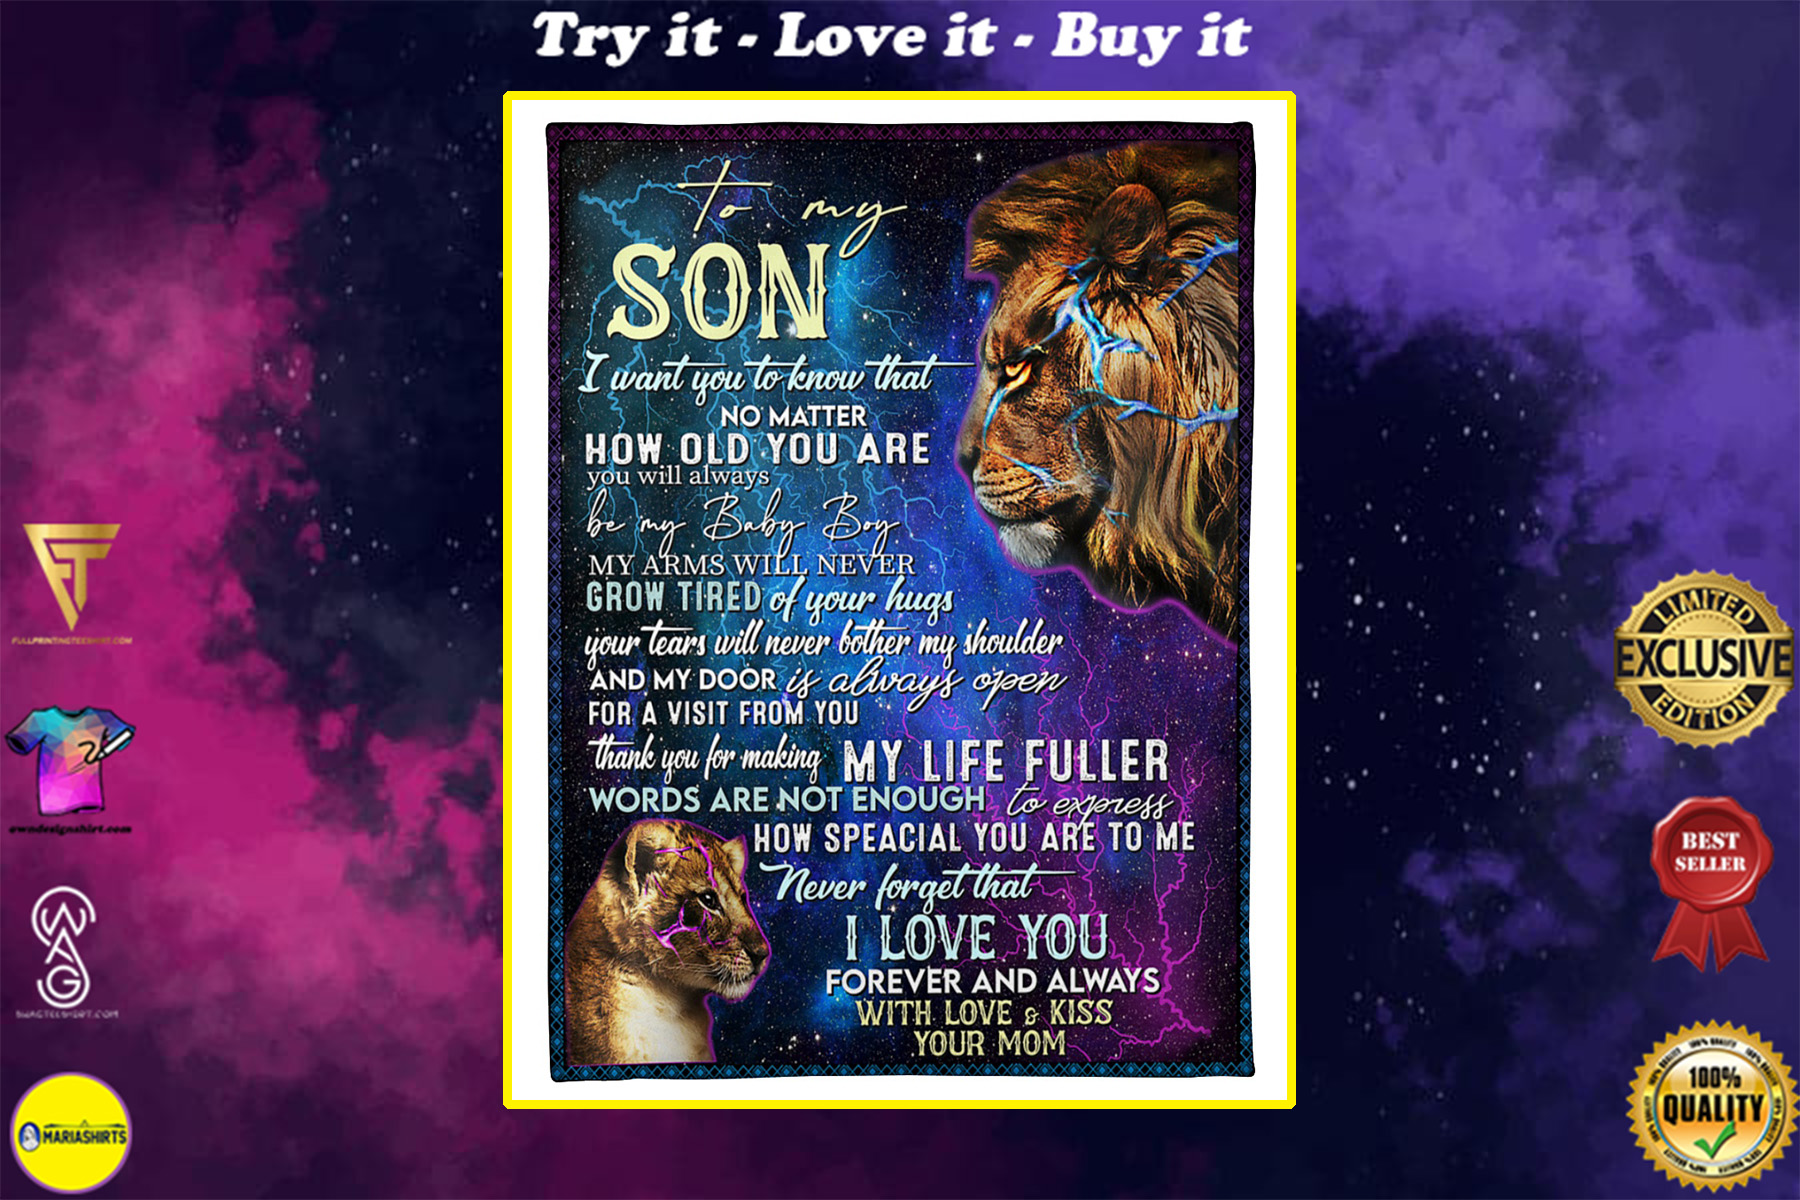 lion to my son i love you forever and always with love and kiss your mom blanket